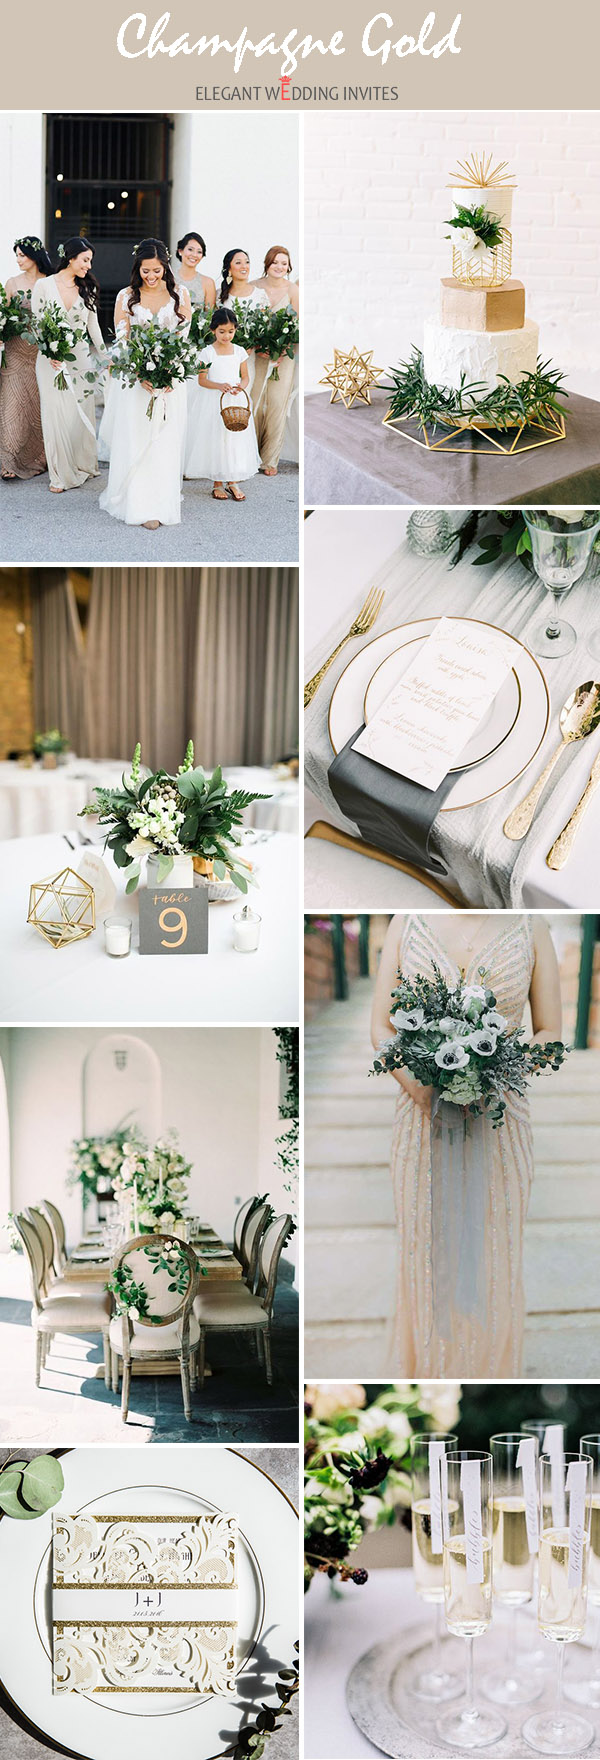 Wedding Trends 2018: 10 Gorgeous Wedding Colors with Lush Greenery ...